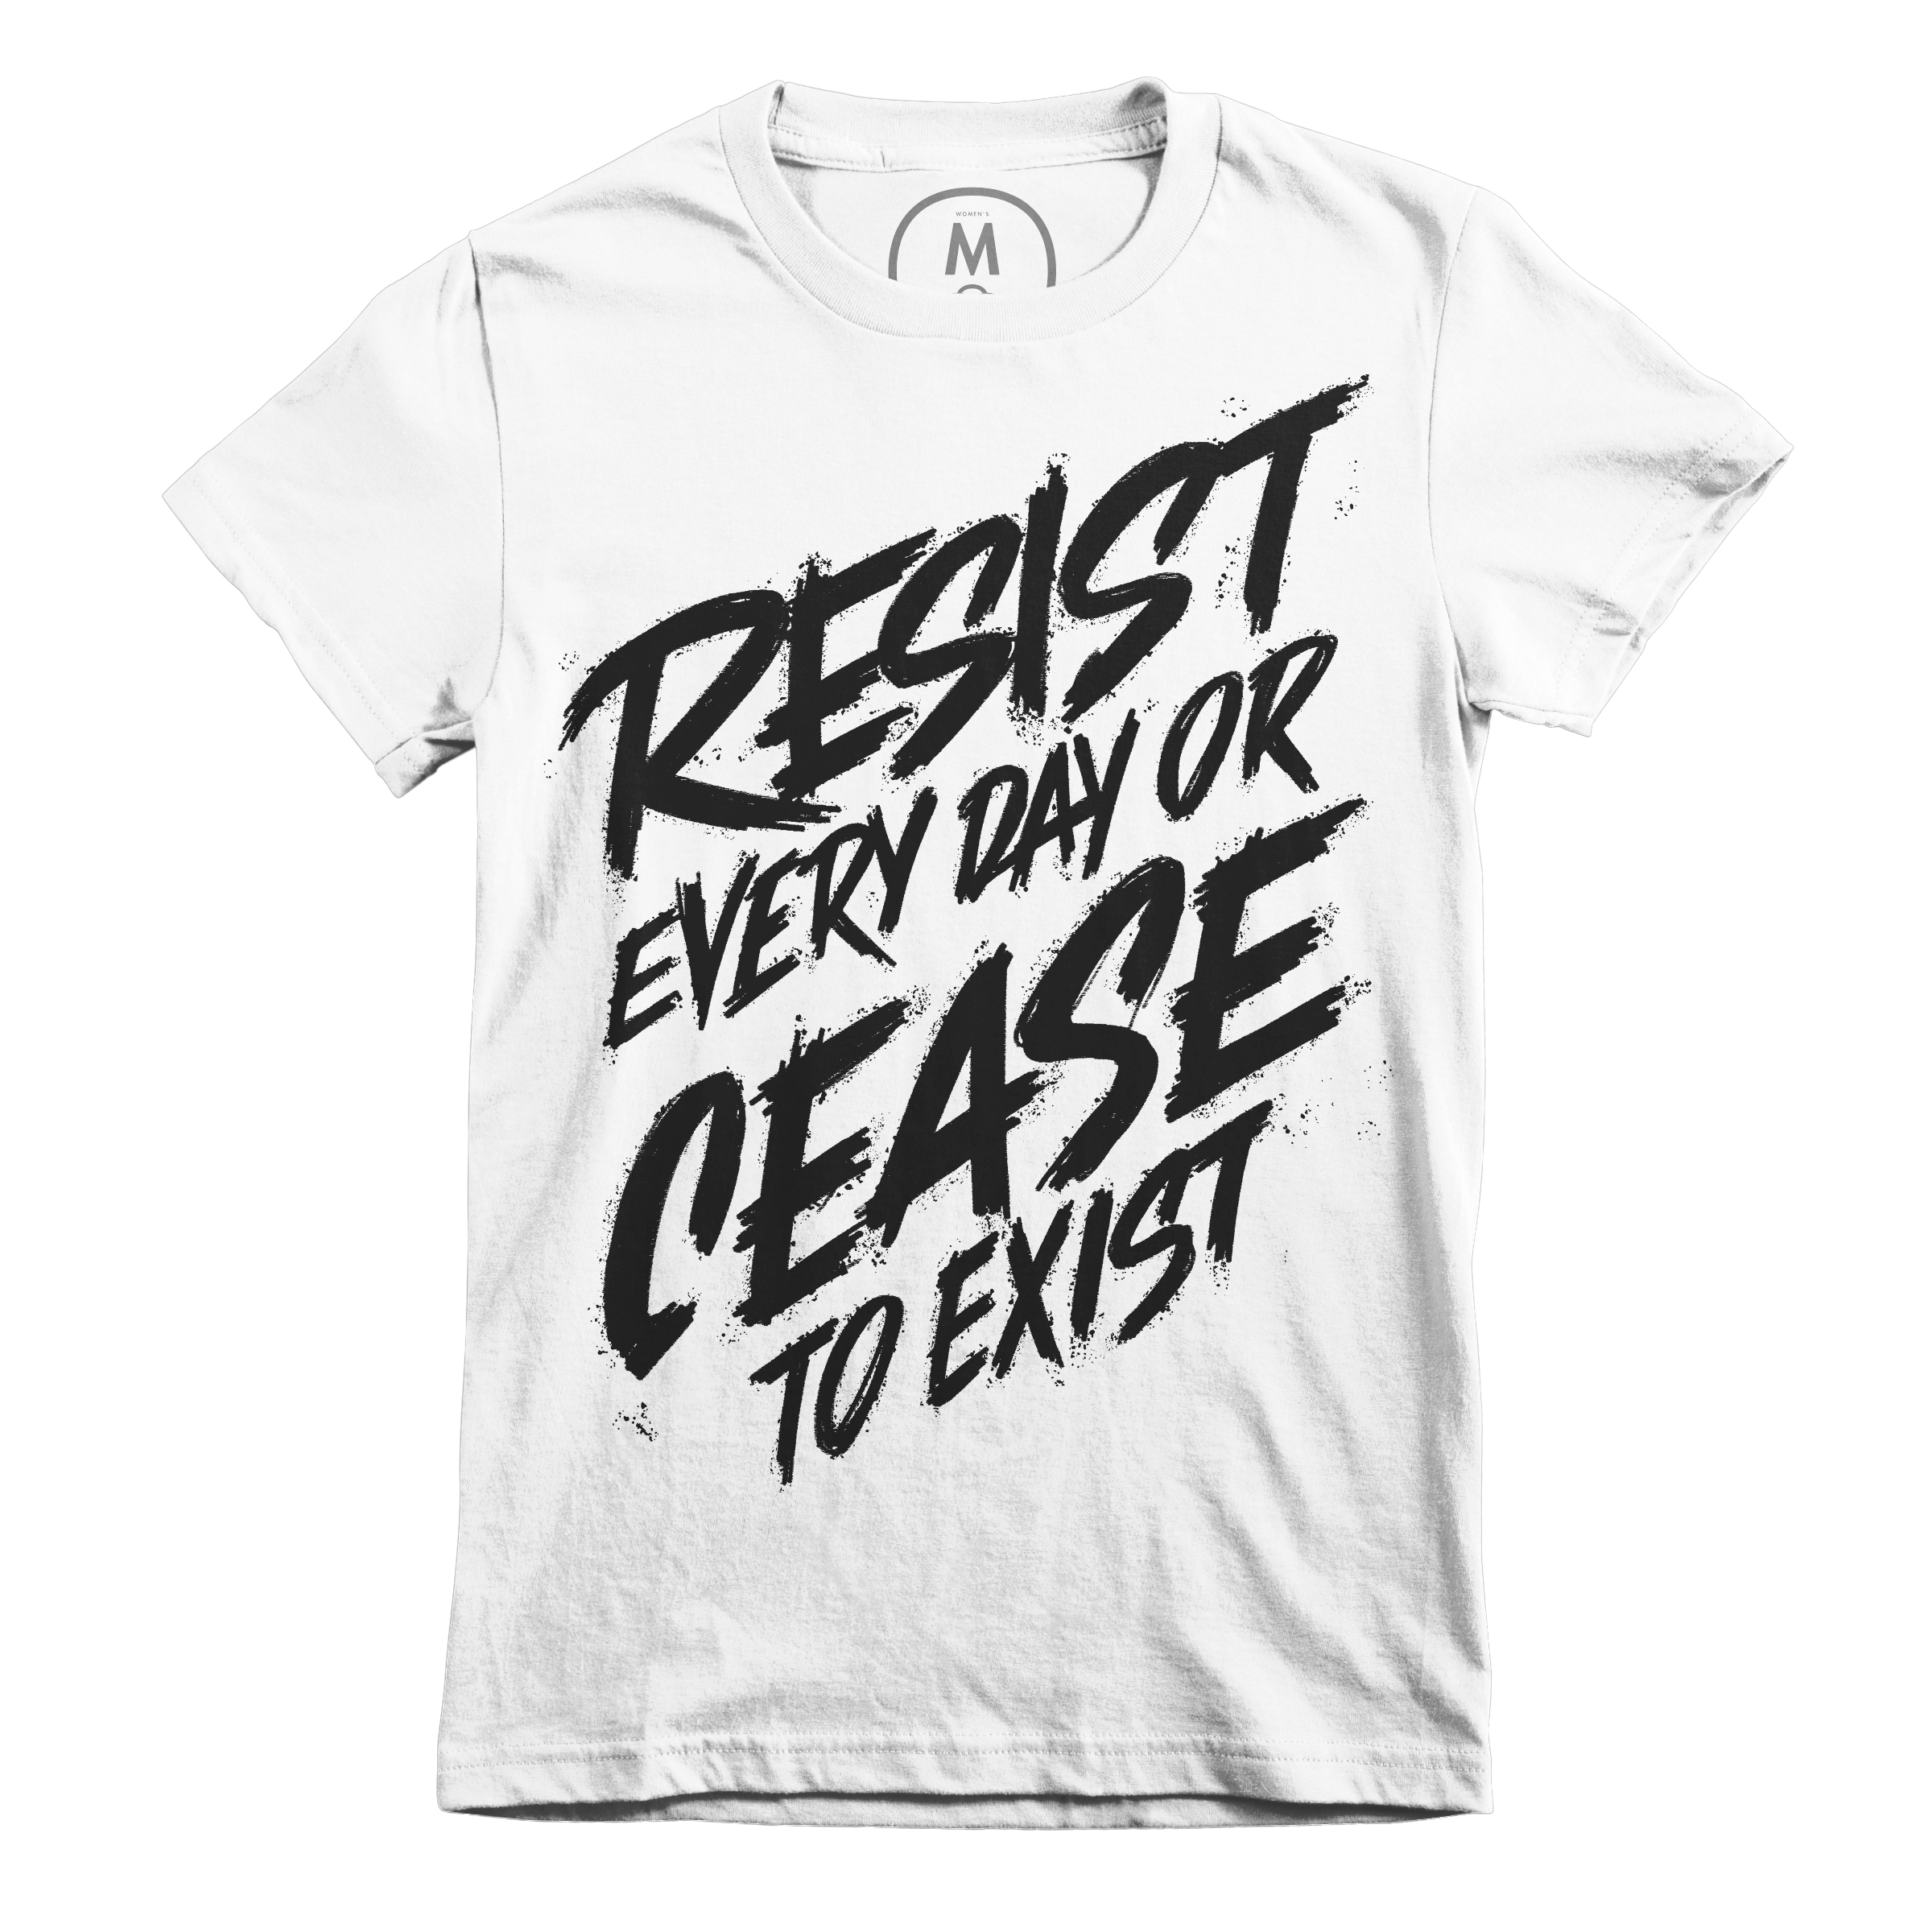 Resist Every Day or Cease to Exist White (Women's)